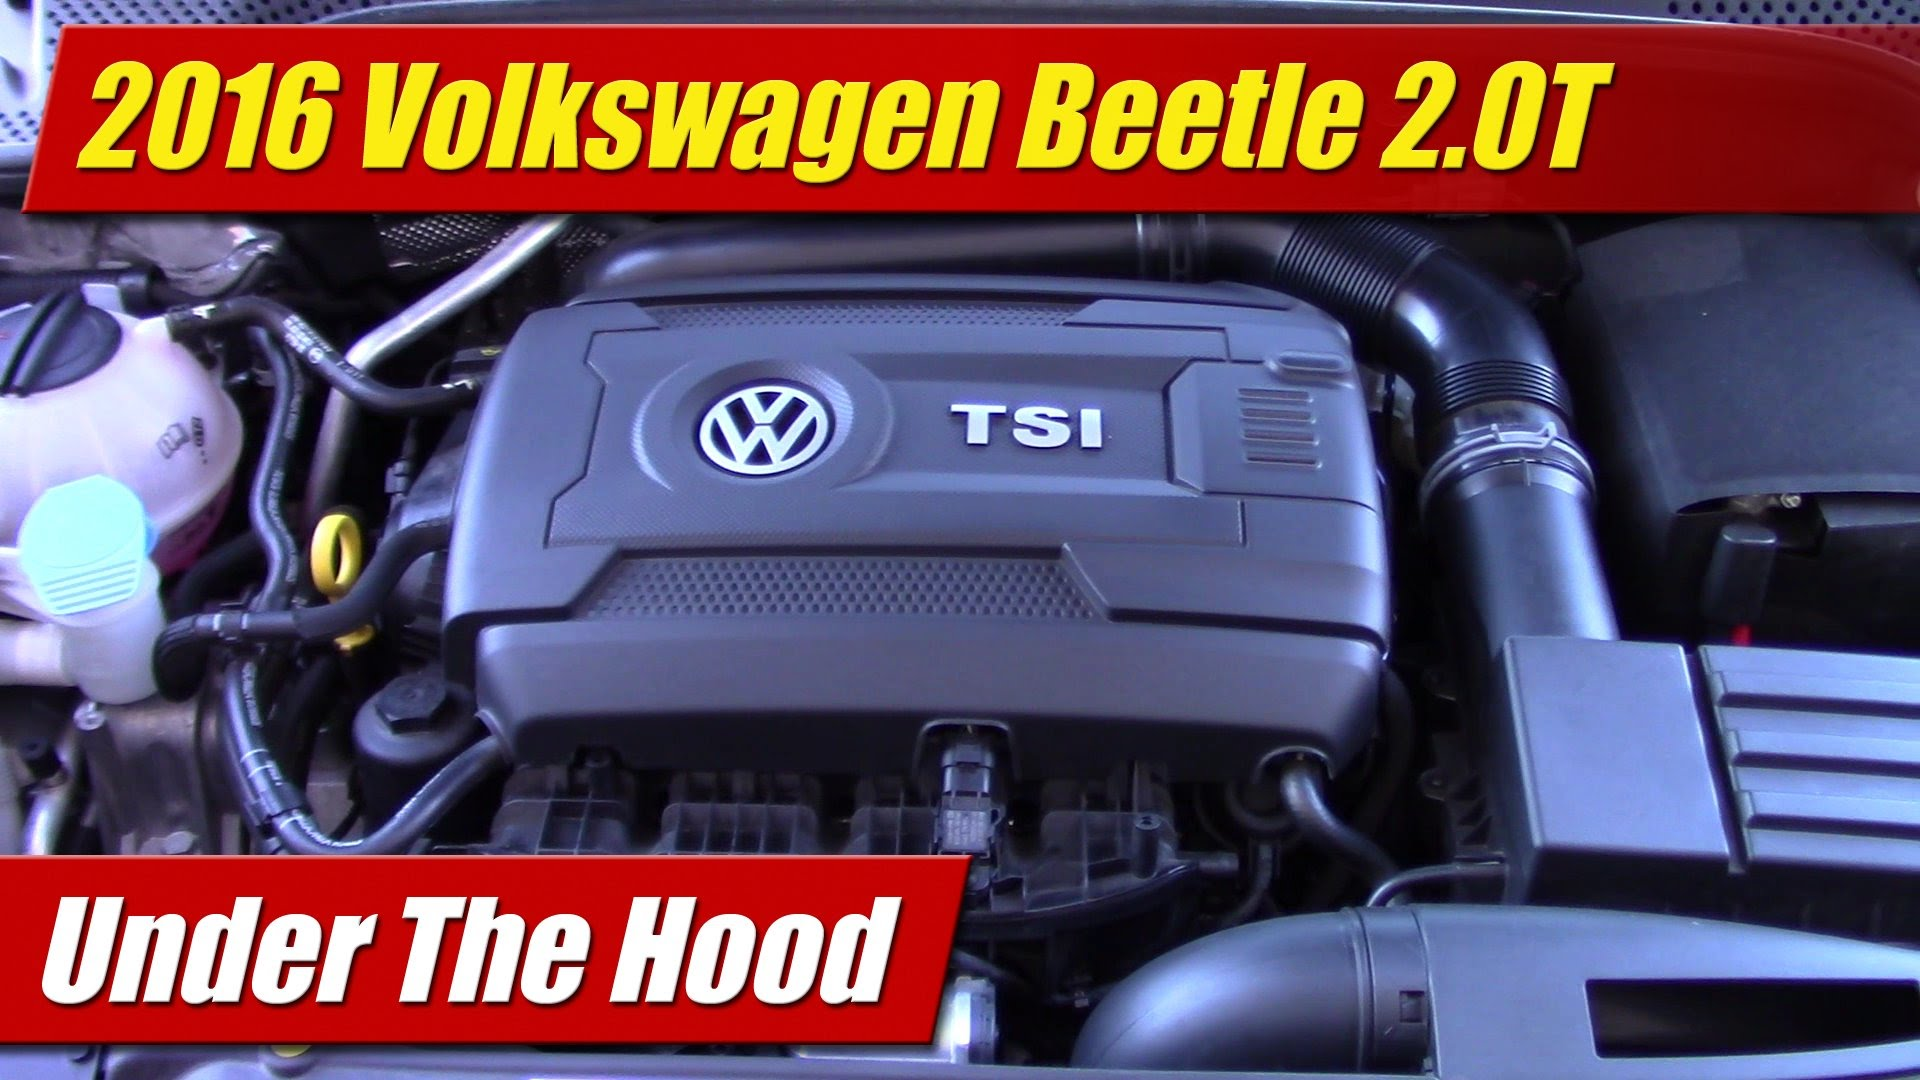 under the hood 2016 volkswagen beetle 2 0t under the hood 2016 volkswagen beetle 2 0t testdriven tv 2002 VW Beetle Fuse Box Diagram at n-0.co